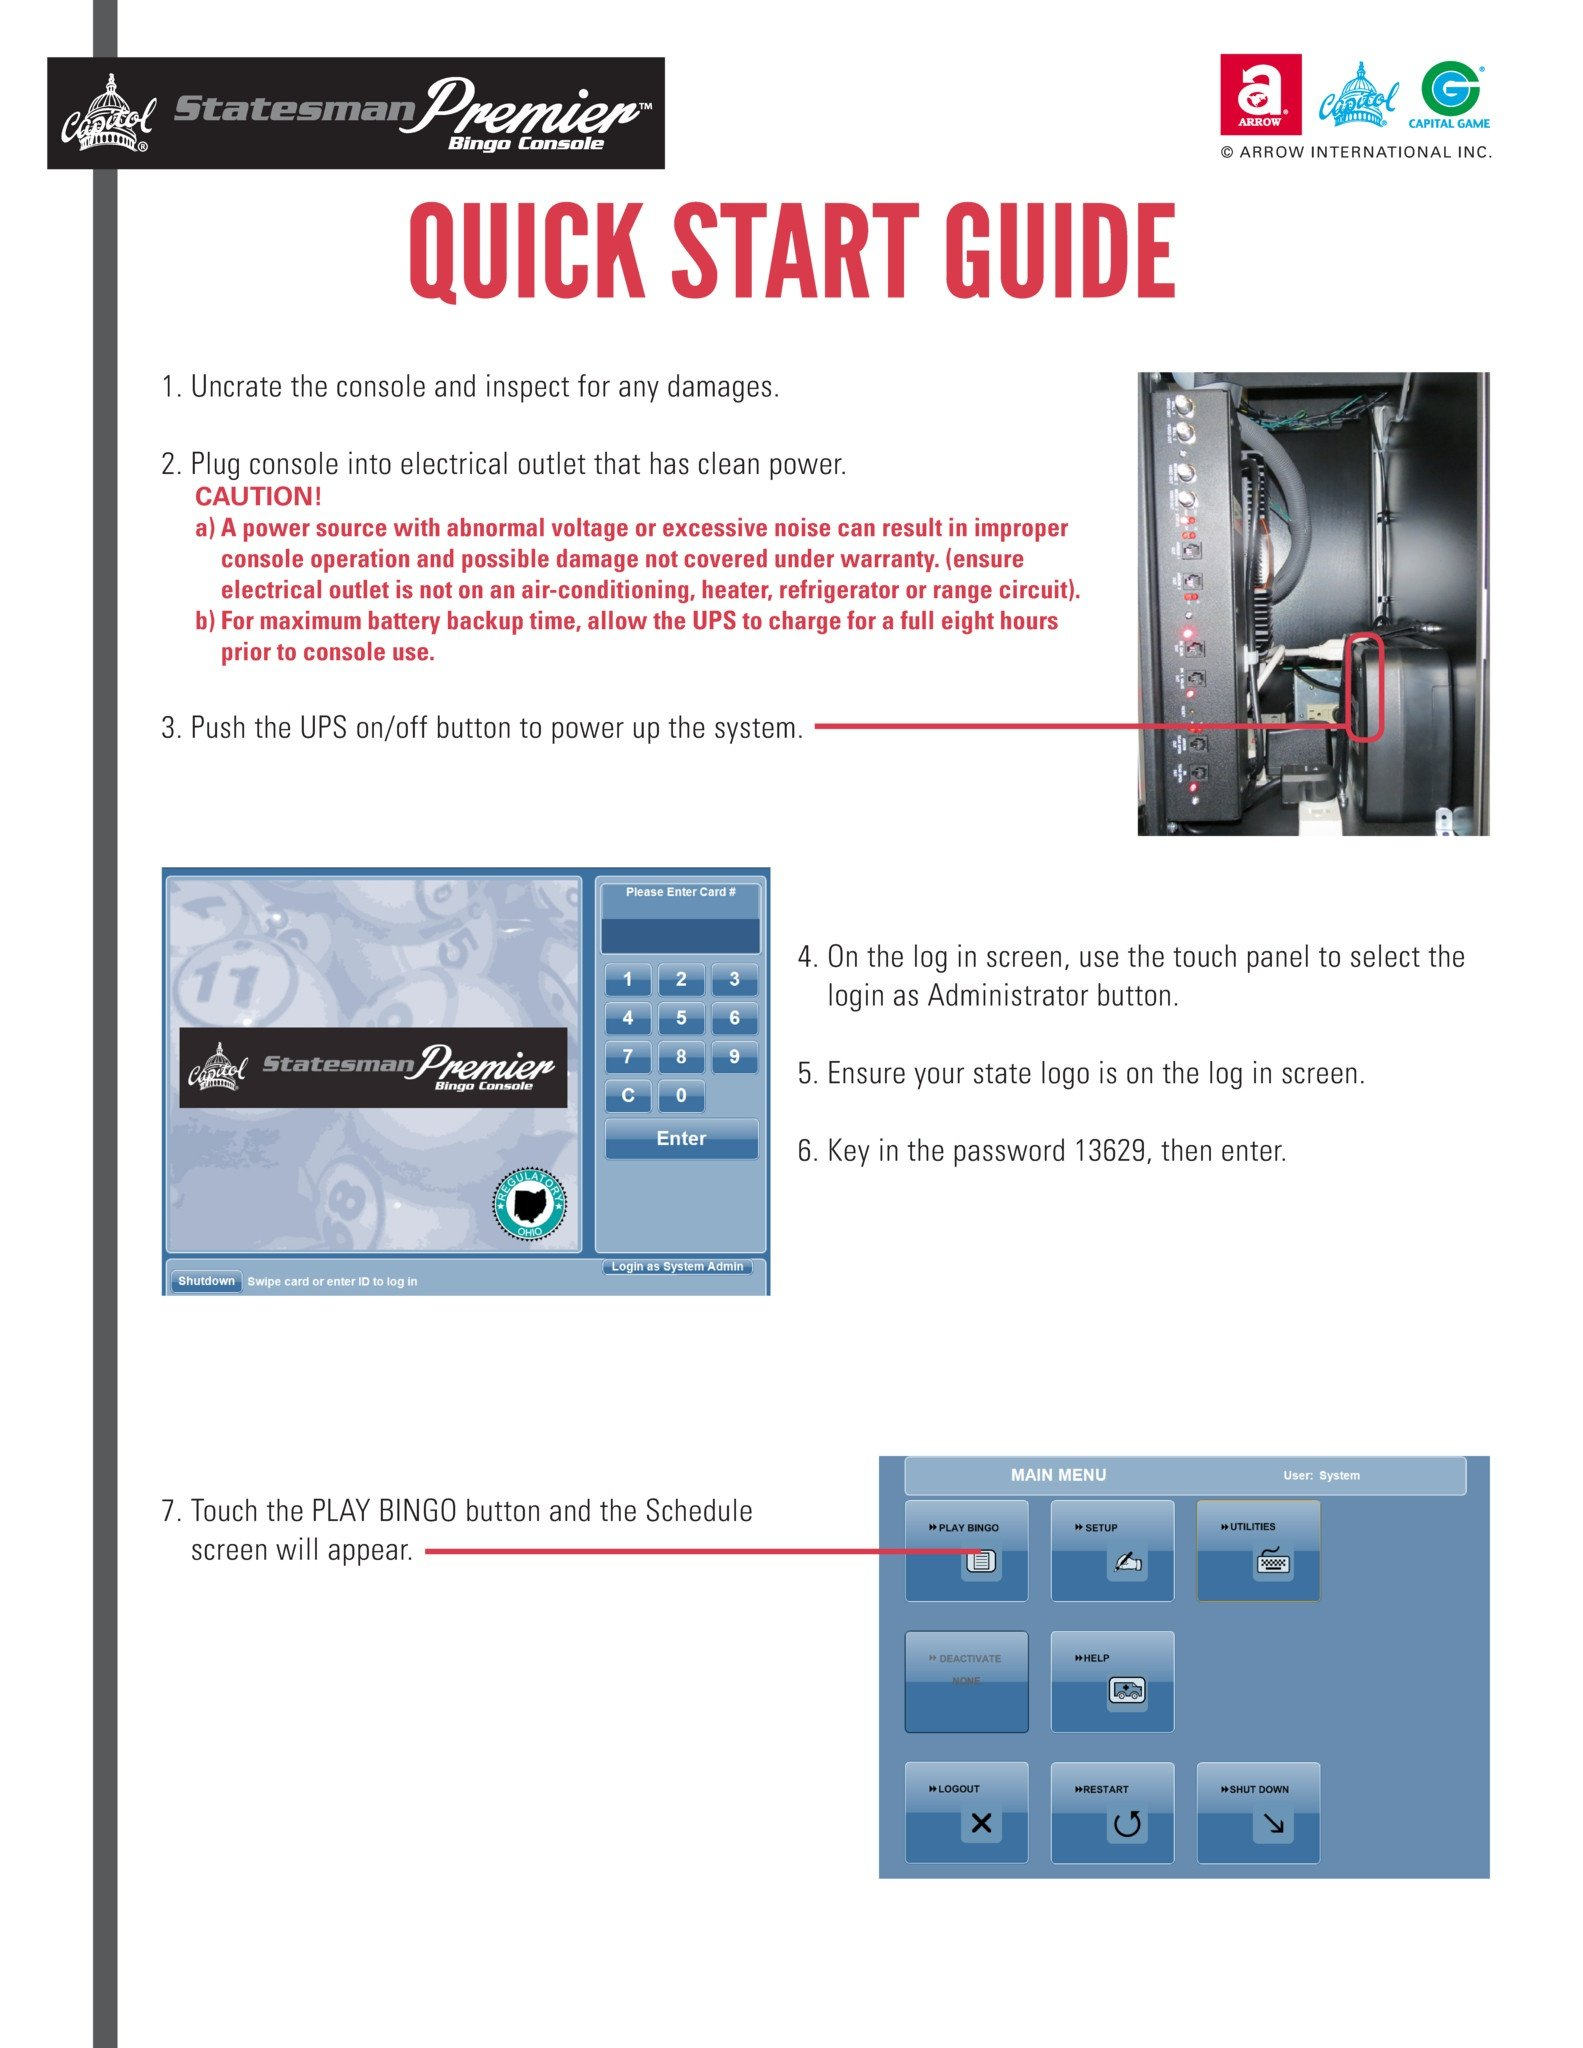 Statesman Premier Quick Start Guide Equipment Manuals/Quick Start Guides